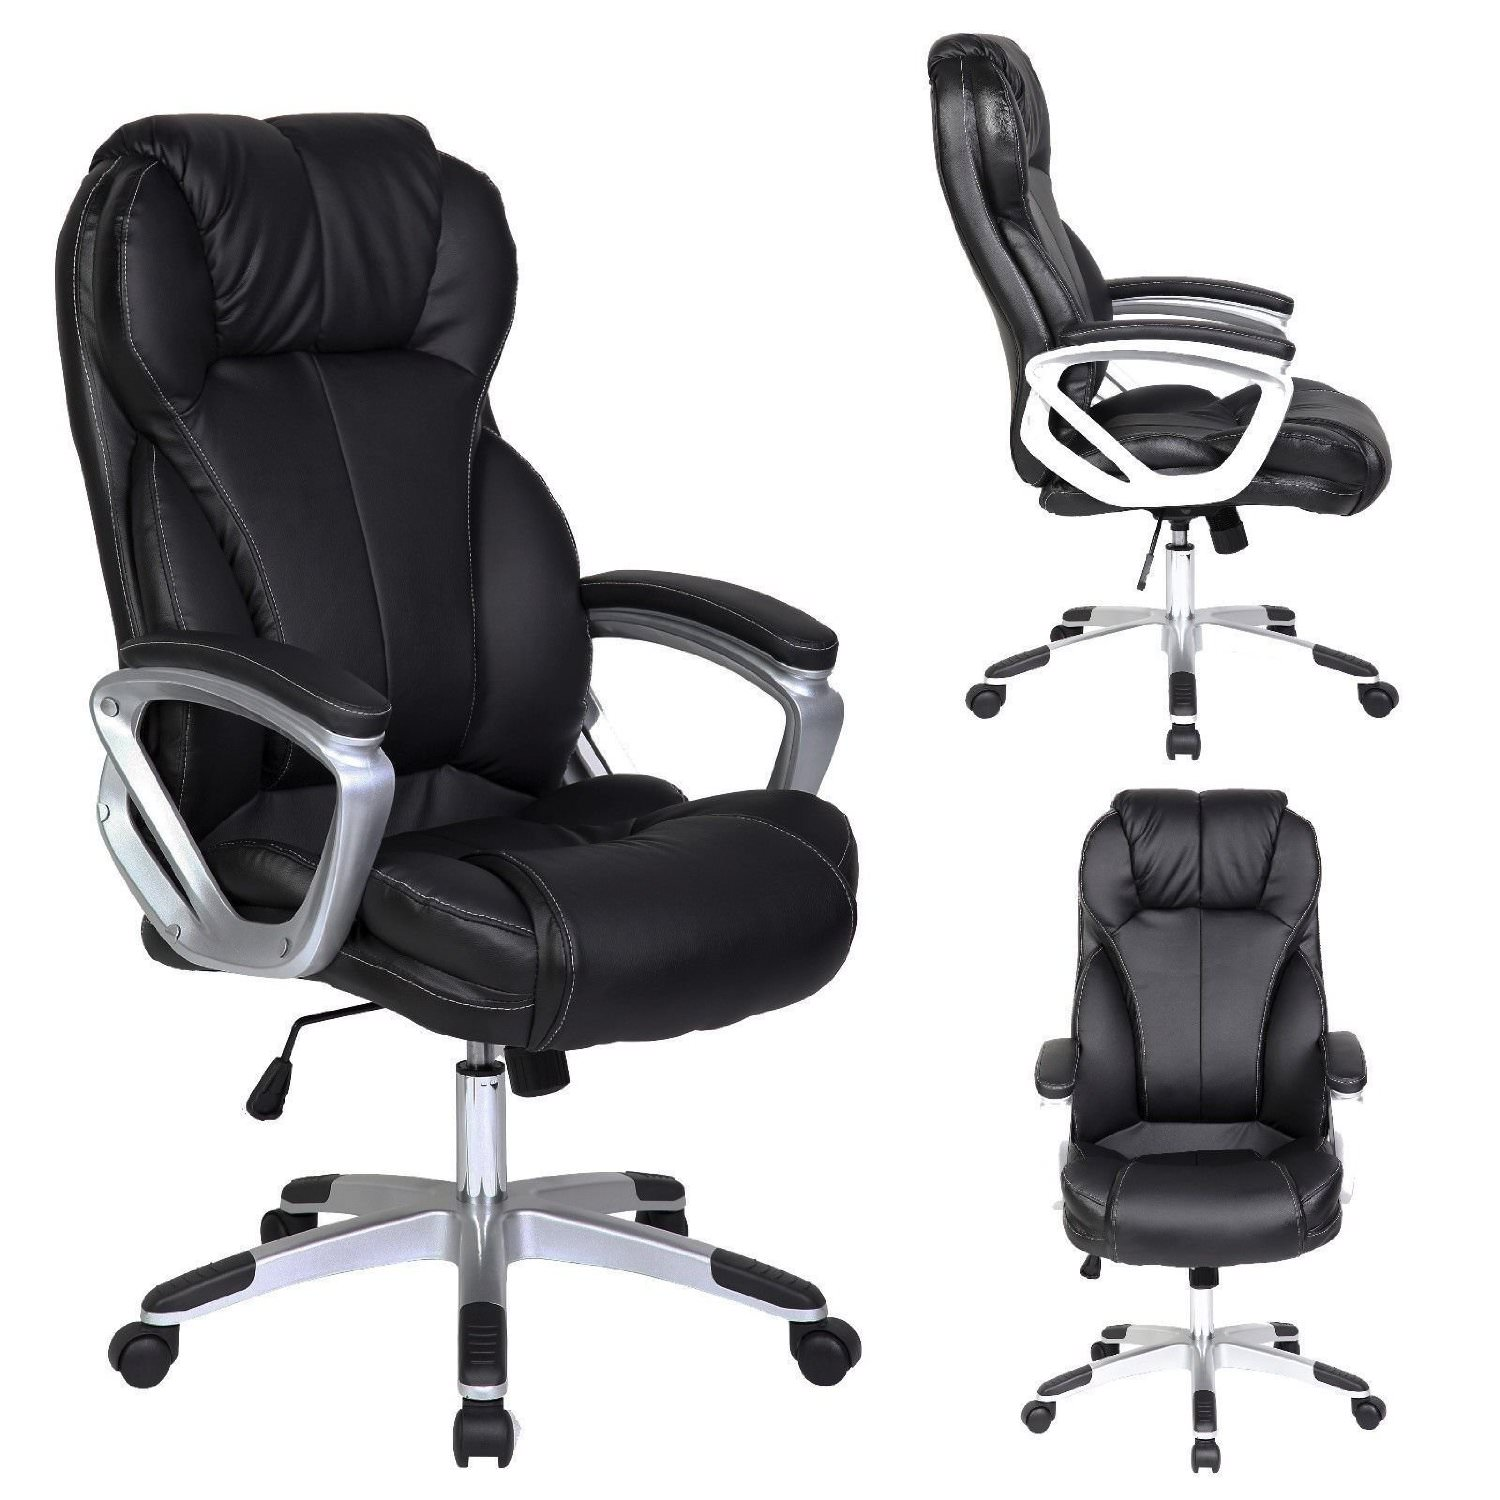 Office Chair Designer Intended 2xhome Modern High Back Tall Ribbed Pu Leather Swivel Tilt Adjustable Chair Designer Boss Executive